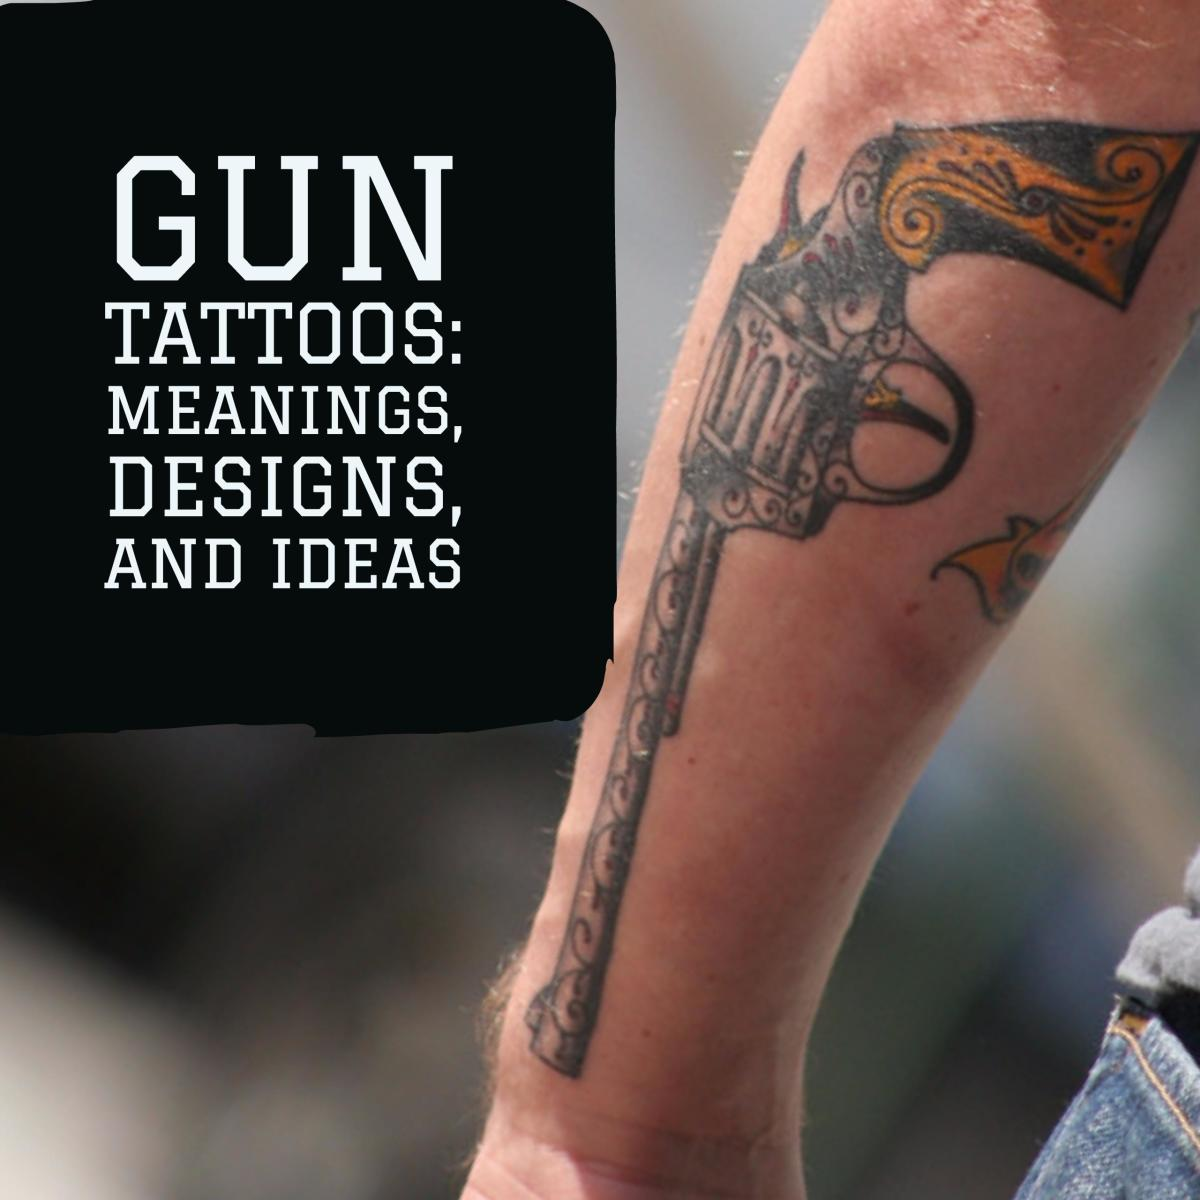 Gun Tattoos: Meanings, Designs, and Ideas